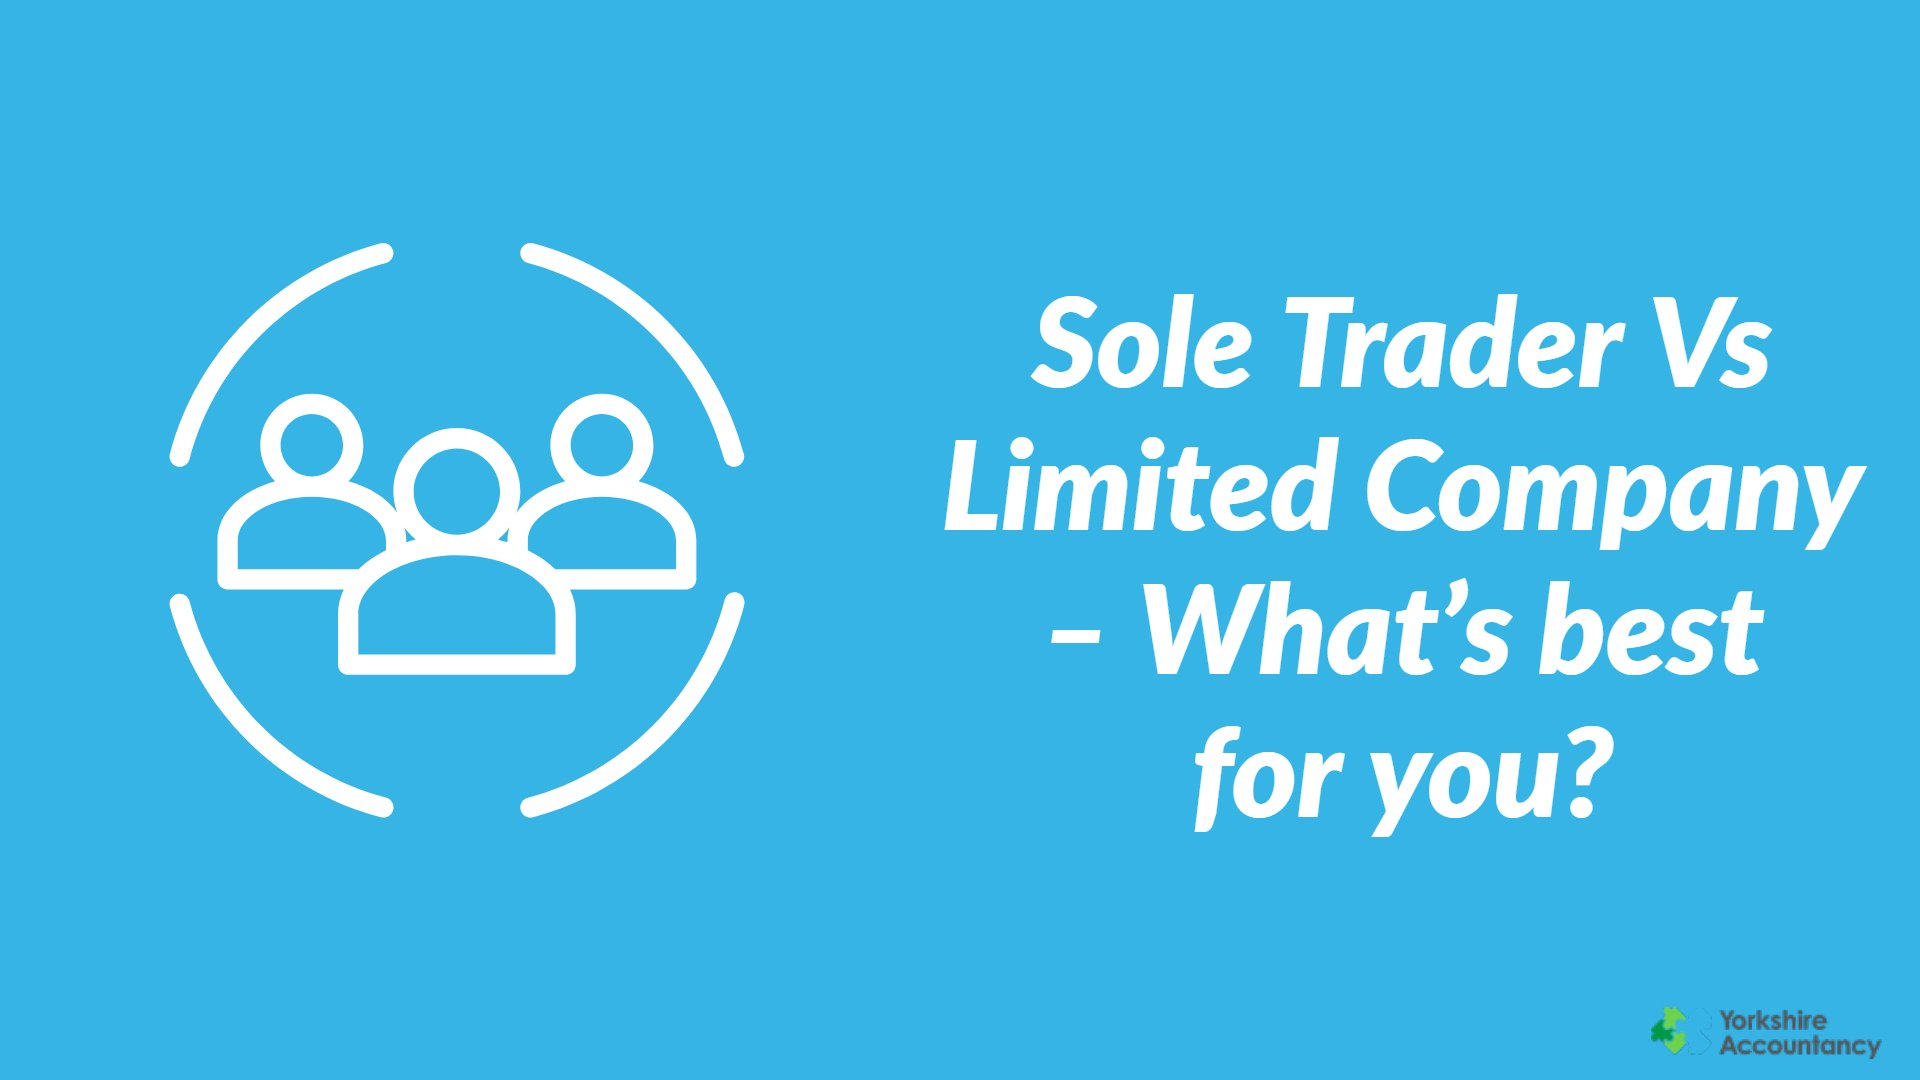 Sole Trader Vs Limited Company – What's best for you?